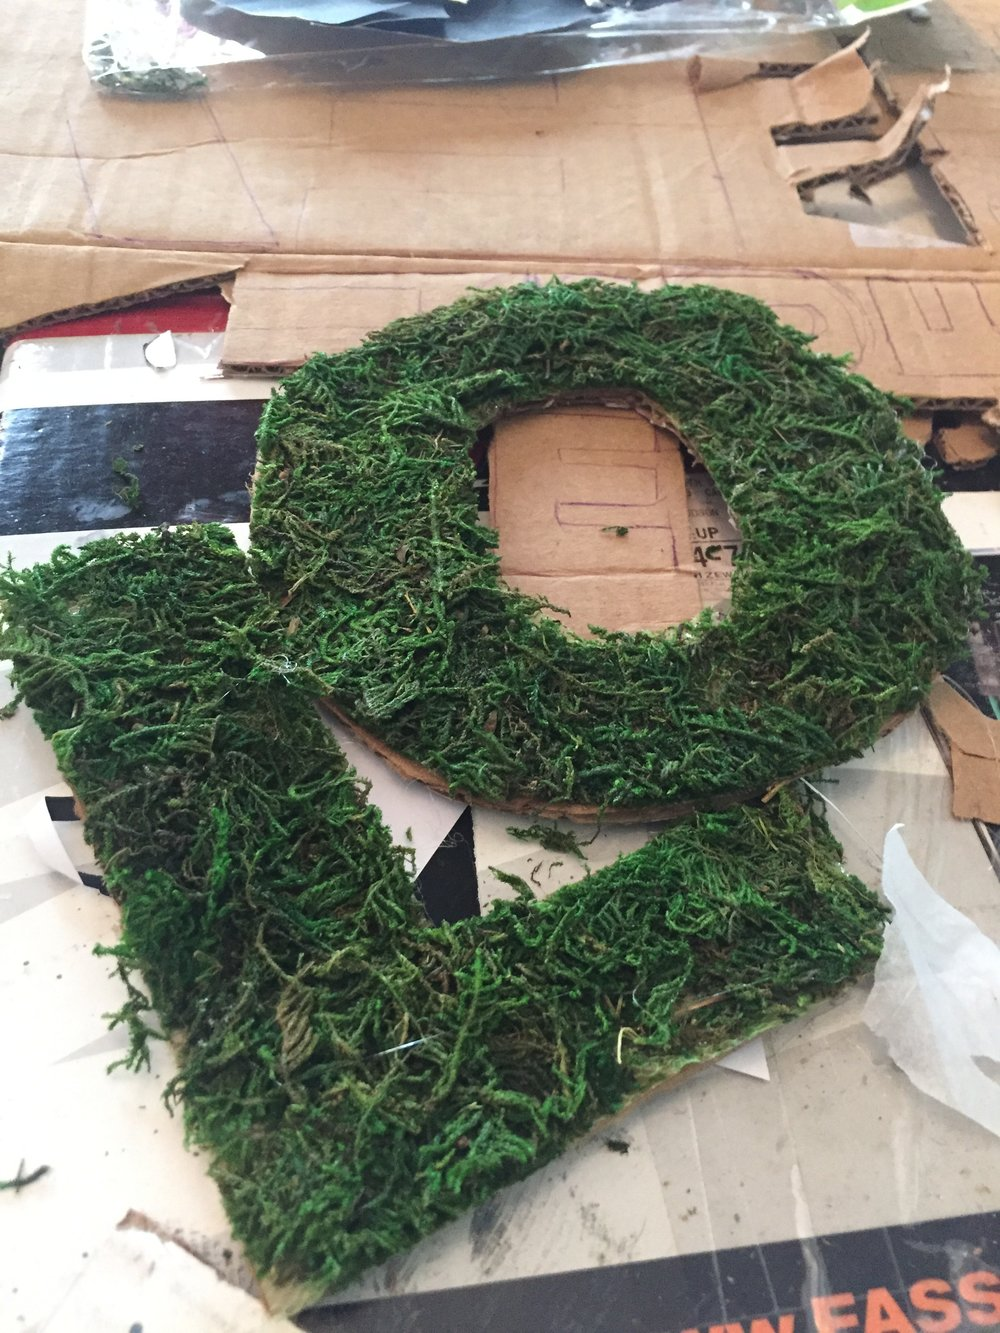 These are my work-in-progress moss letters. If nothing else, I had a fun time playing with the moss.